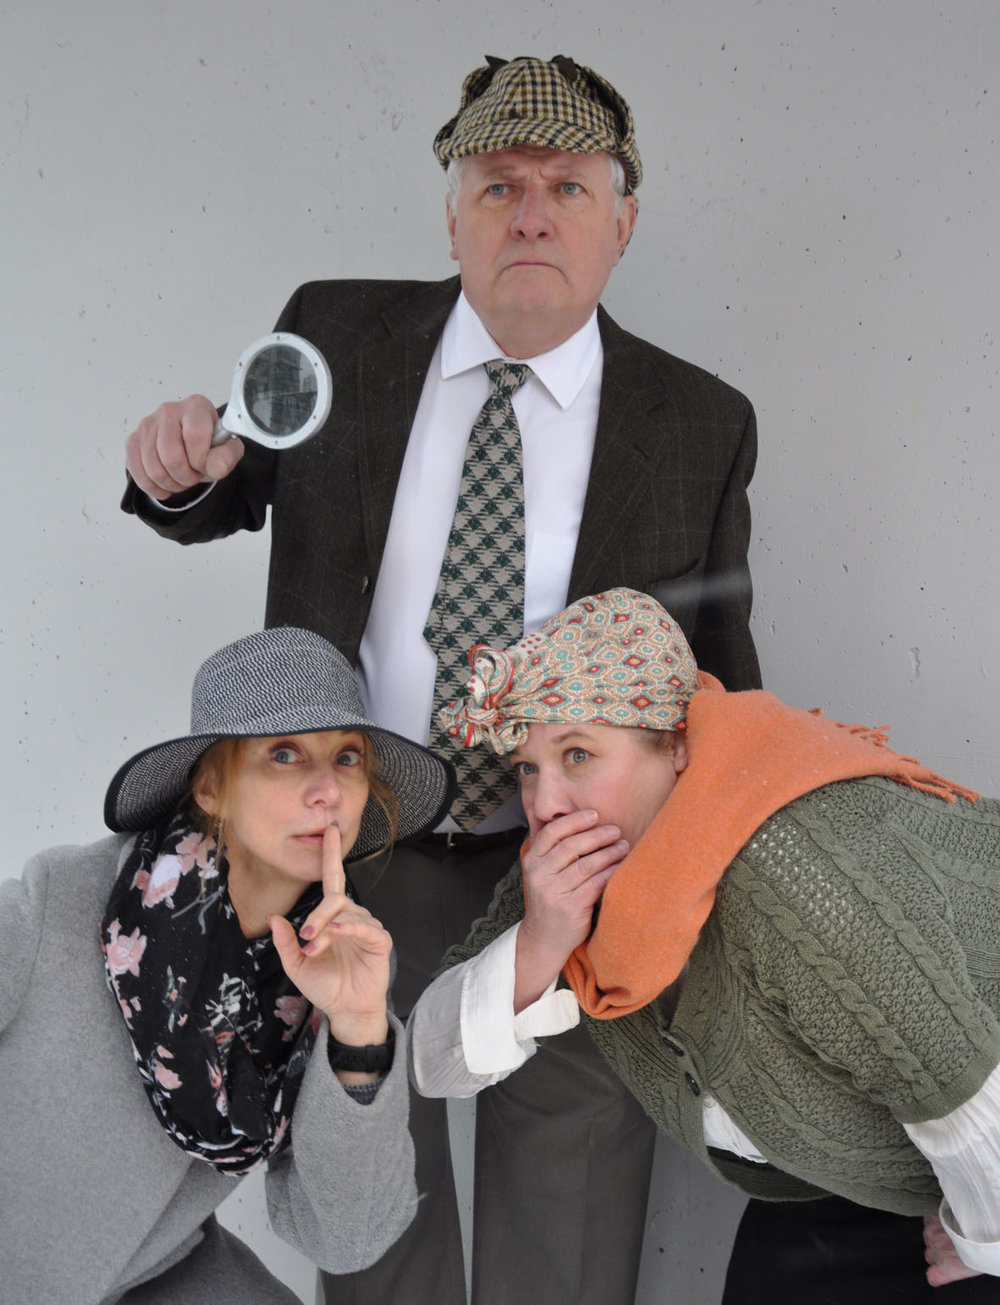 From left, Annabel Kershaw, Keith Martin Gordey, and Tanja Dixon-Warren appear in Mystery at Greenfingers. (Ellie O'Day Photo)